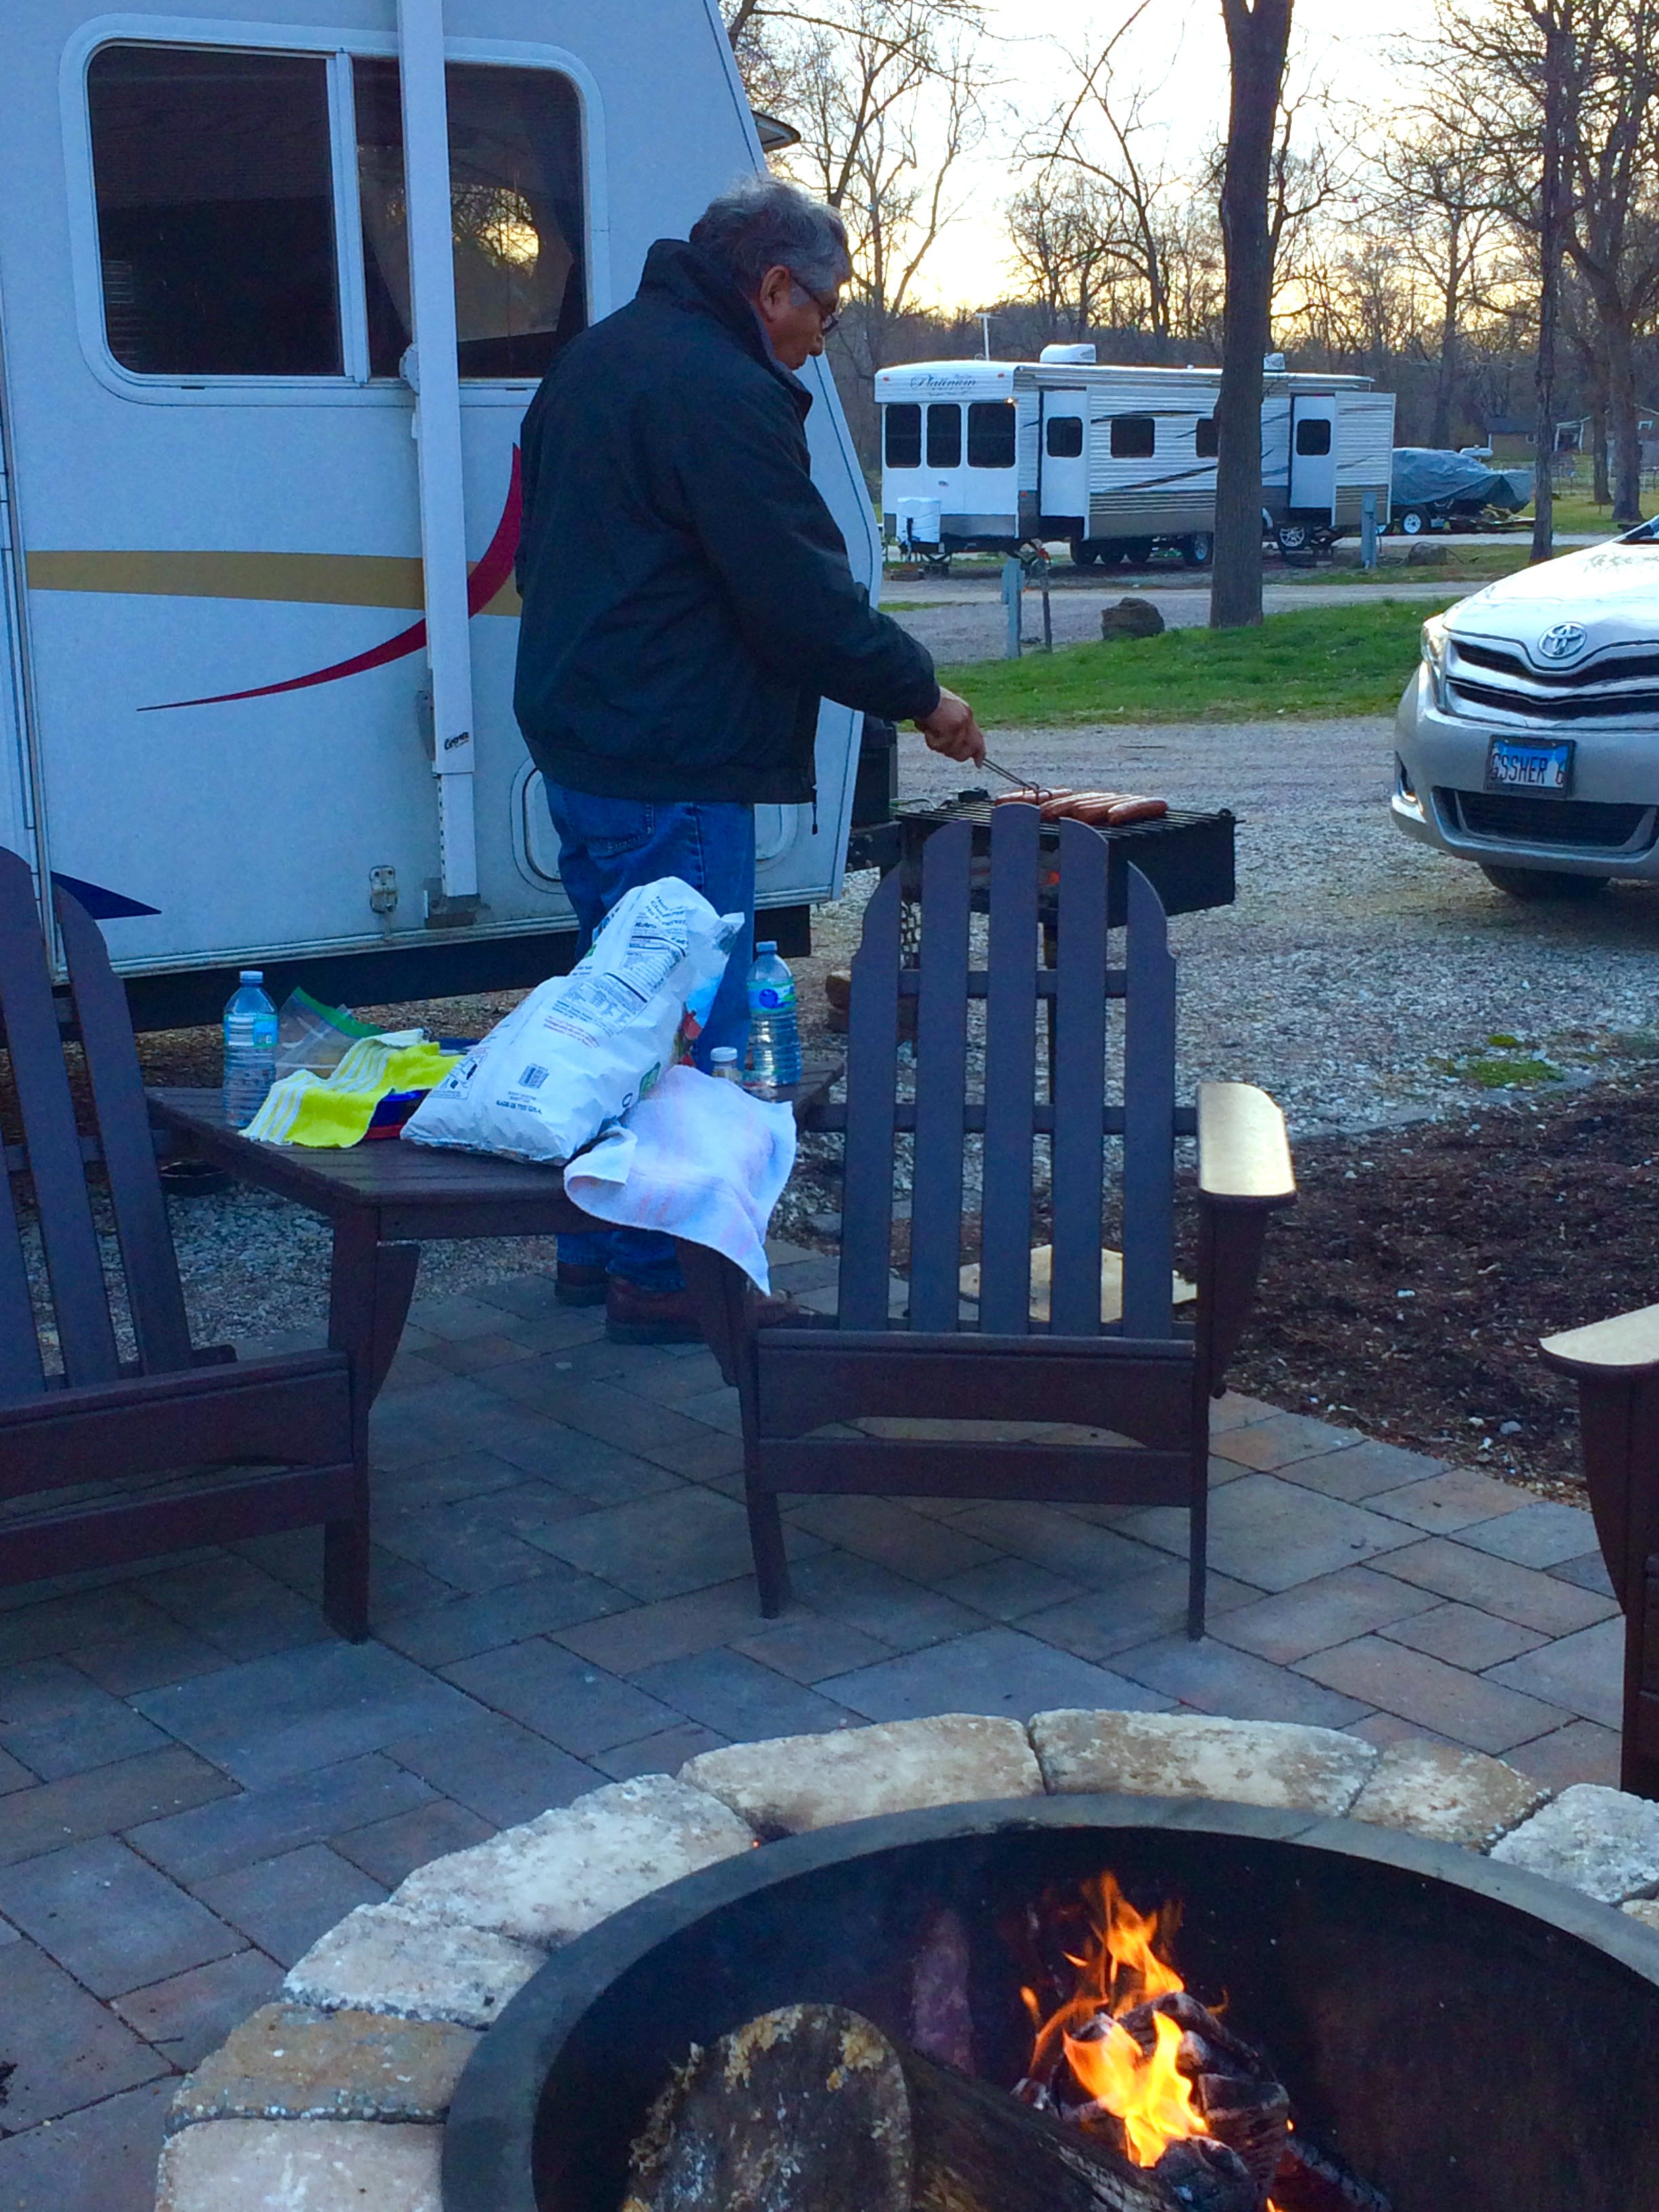 All set up and ready to eat yummy grilled brats and dogs!. Jayco Jay Feather 2006